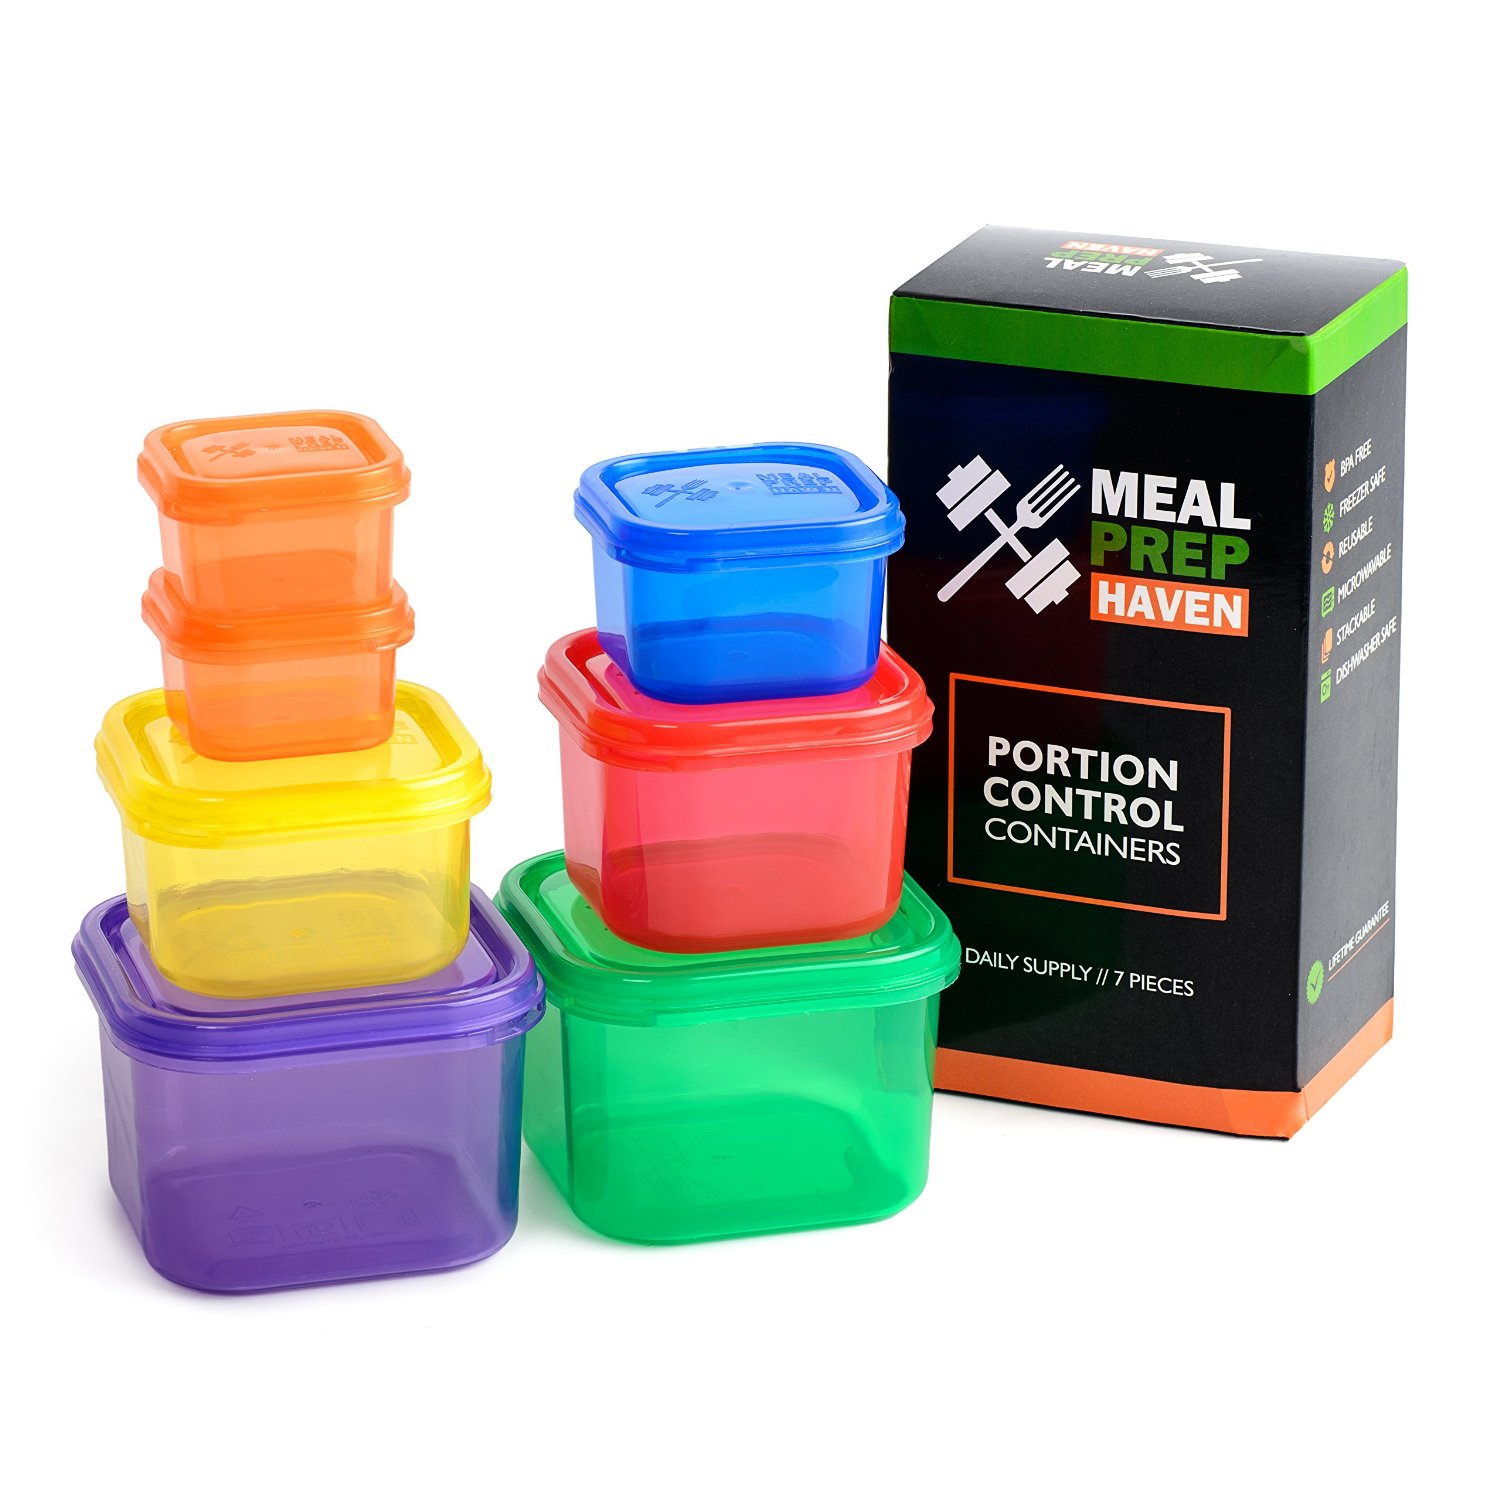 meal prep portion control 7 piece food containers w guide bpa free. Black Bedroom Furniture Sets. Home Design Ideas